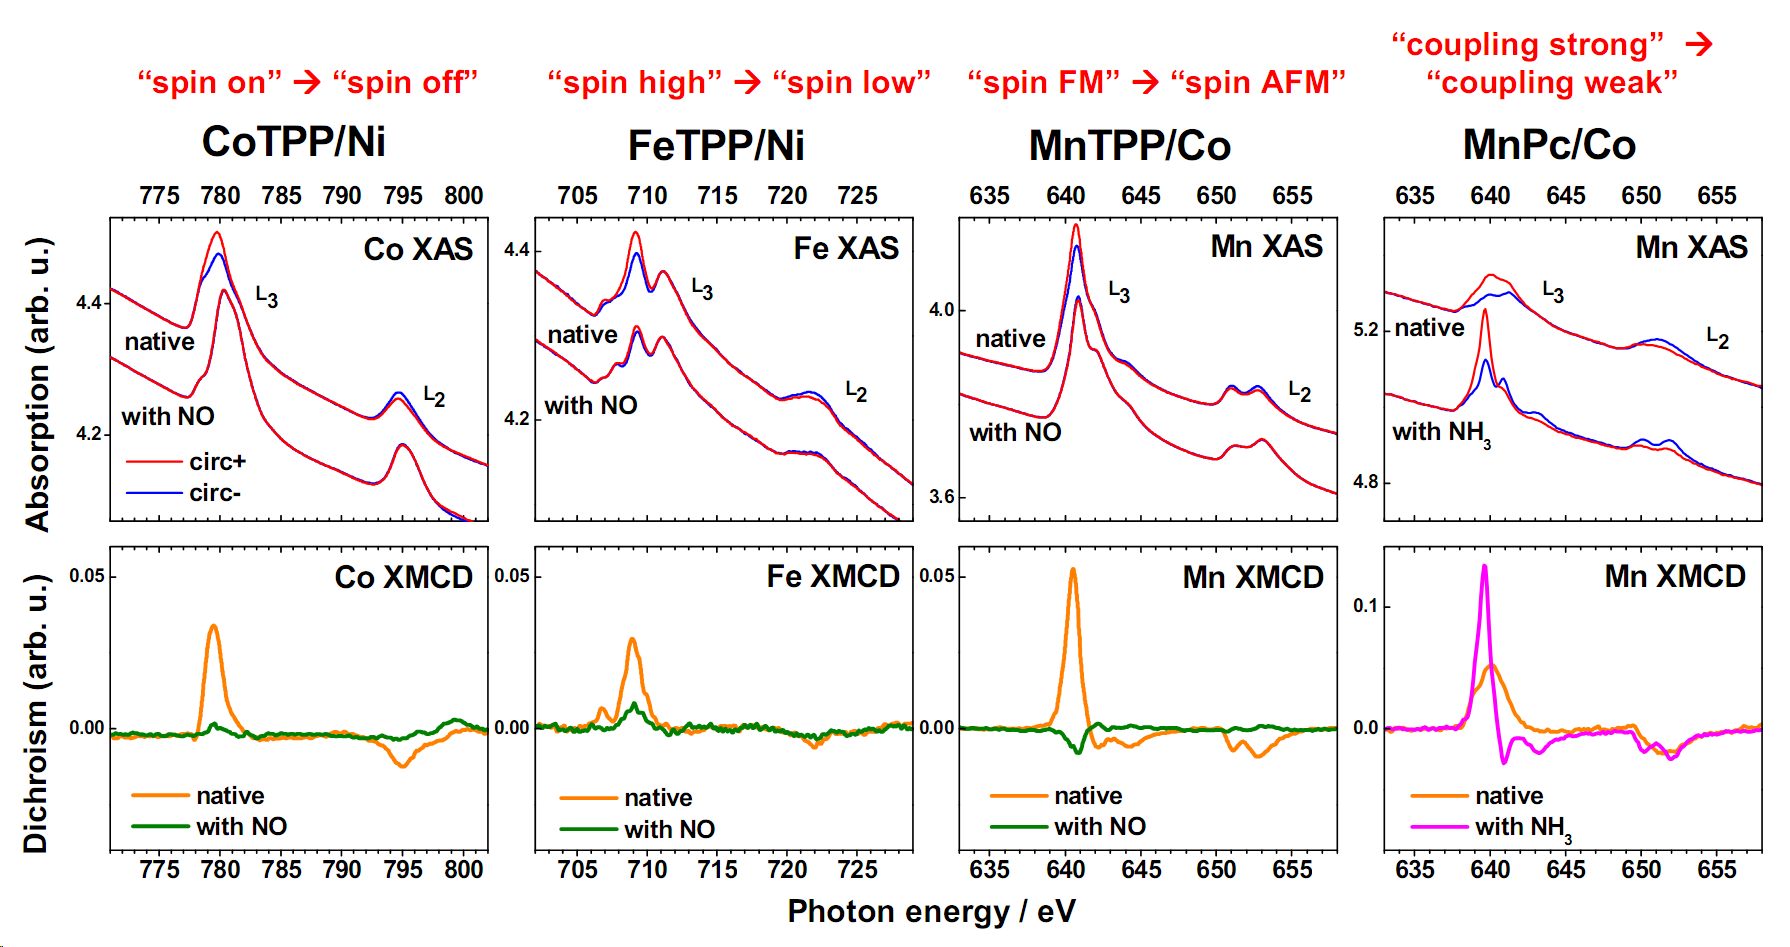 Fig. 2 XAS/XMCD showing the different novel magnetochemical effects observed on surface: 'spin on' to 'spin off', 'spin high' to 'spin low', 'spin FM' to 'spin AFM' and 'coupling strong' to 'coupling weak'.